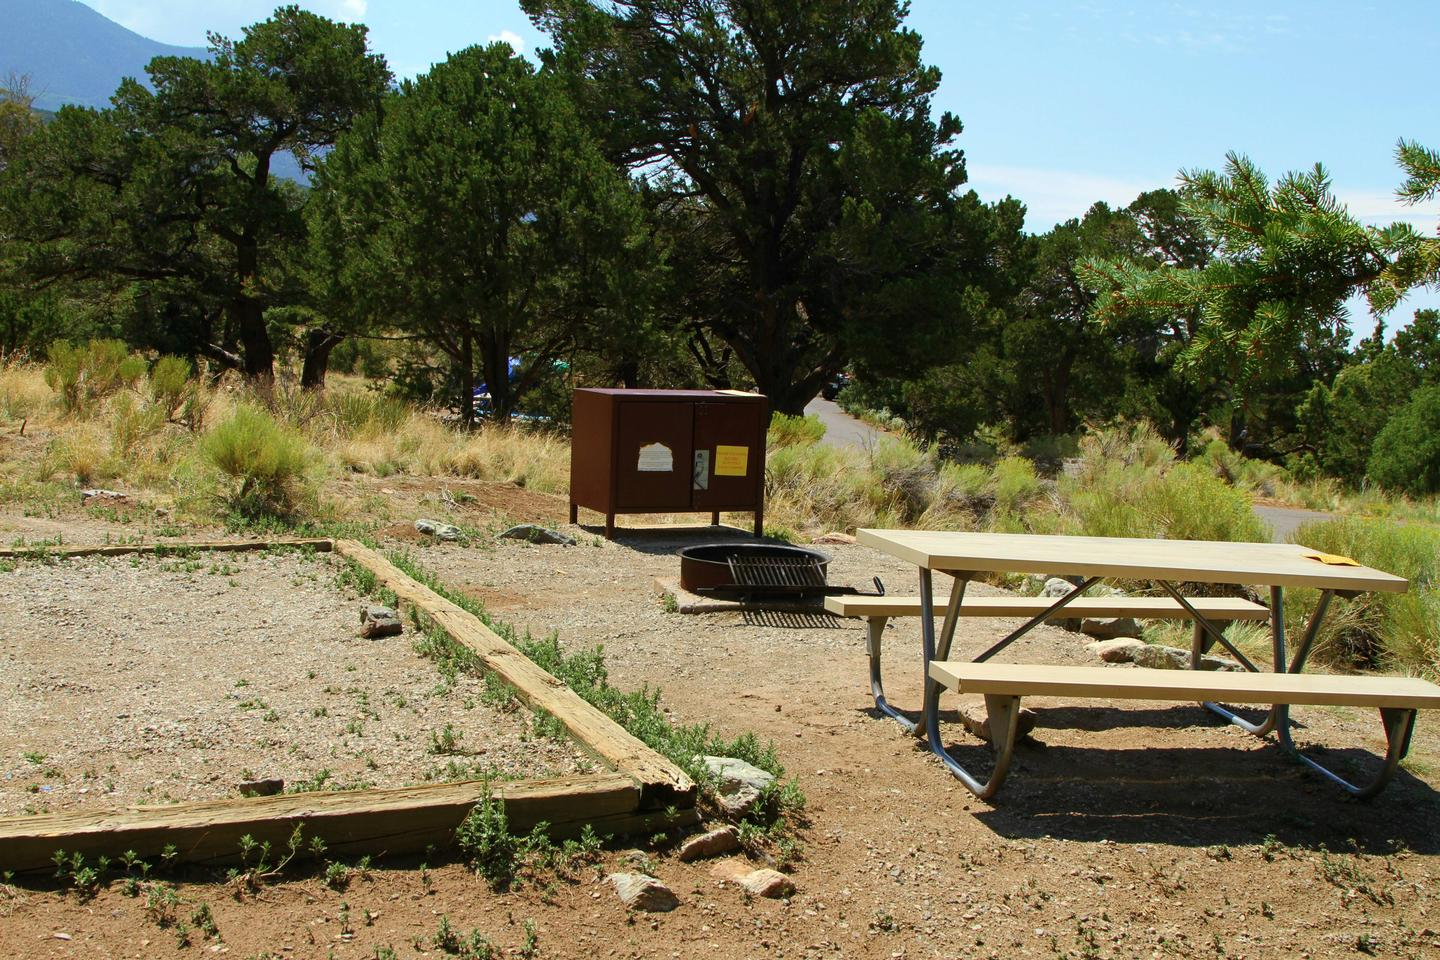 Site #7, Pinon Flats Campground